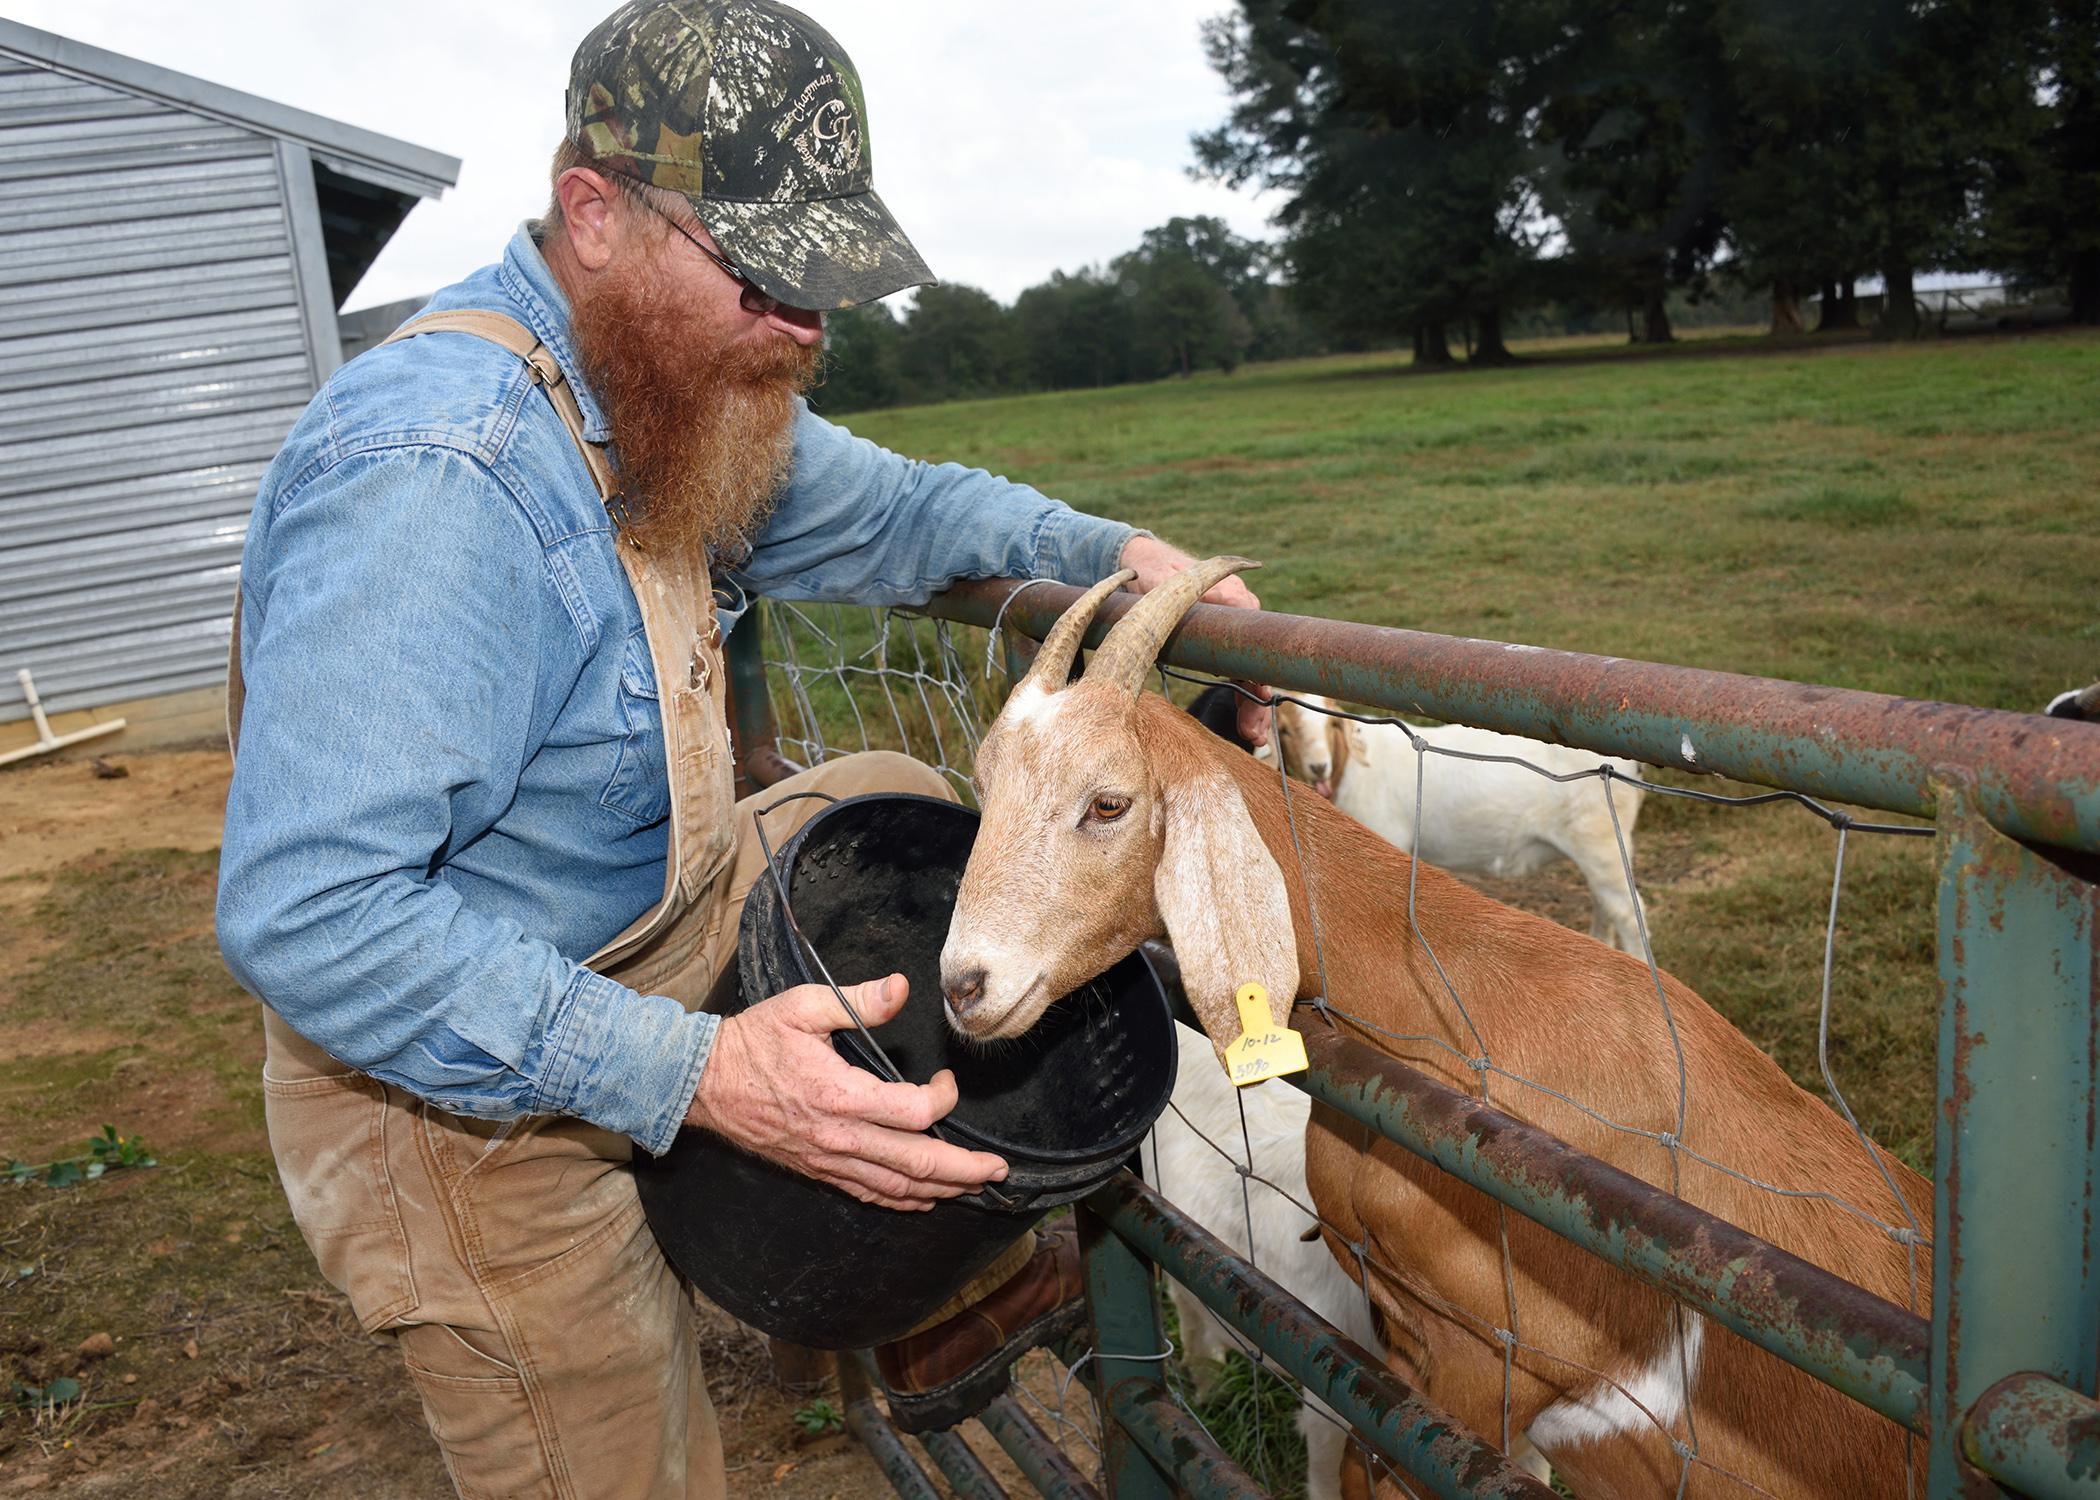 Dewayne Smith checks one of his goats at his Greene County, Mississippi, farm Oct. 13, 2014. Smith is one of several Mississippi farmers diversifying their farming businesses by adding meat goats. (Photo by MSU Ag Communications/Kevin Hudson)